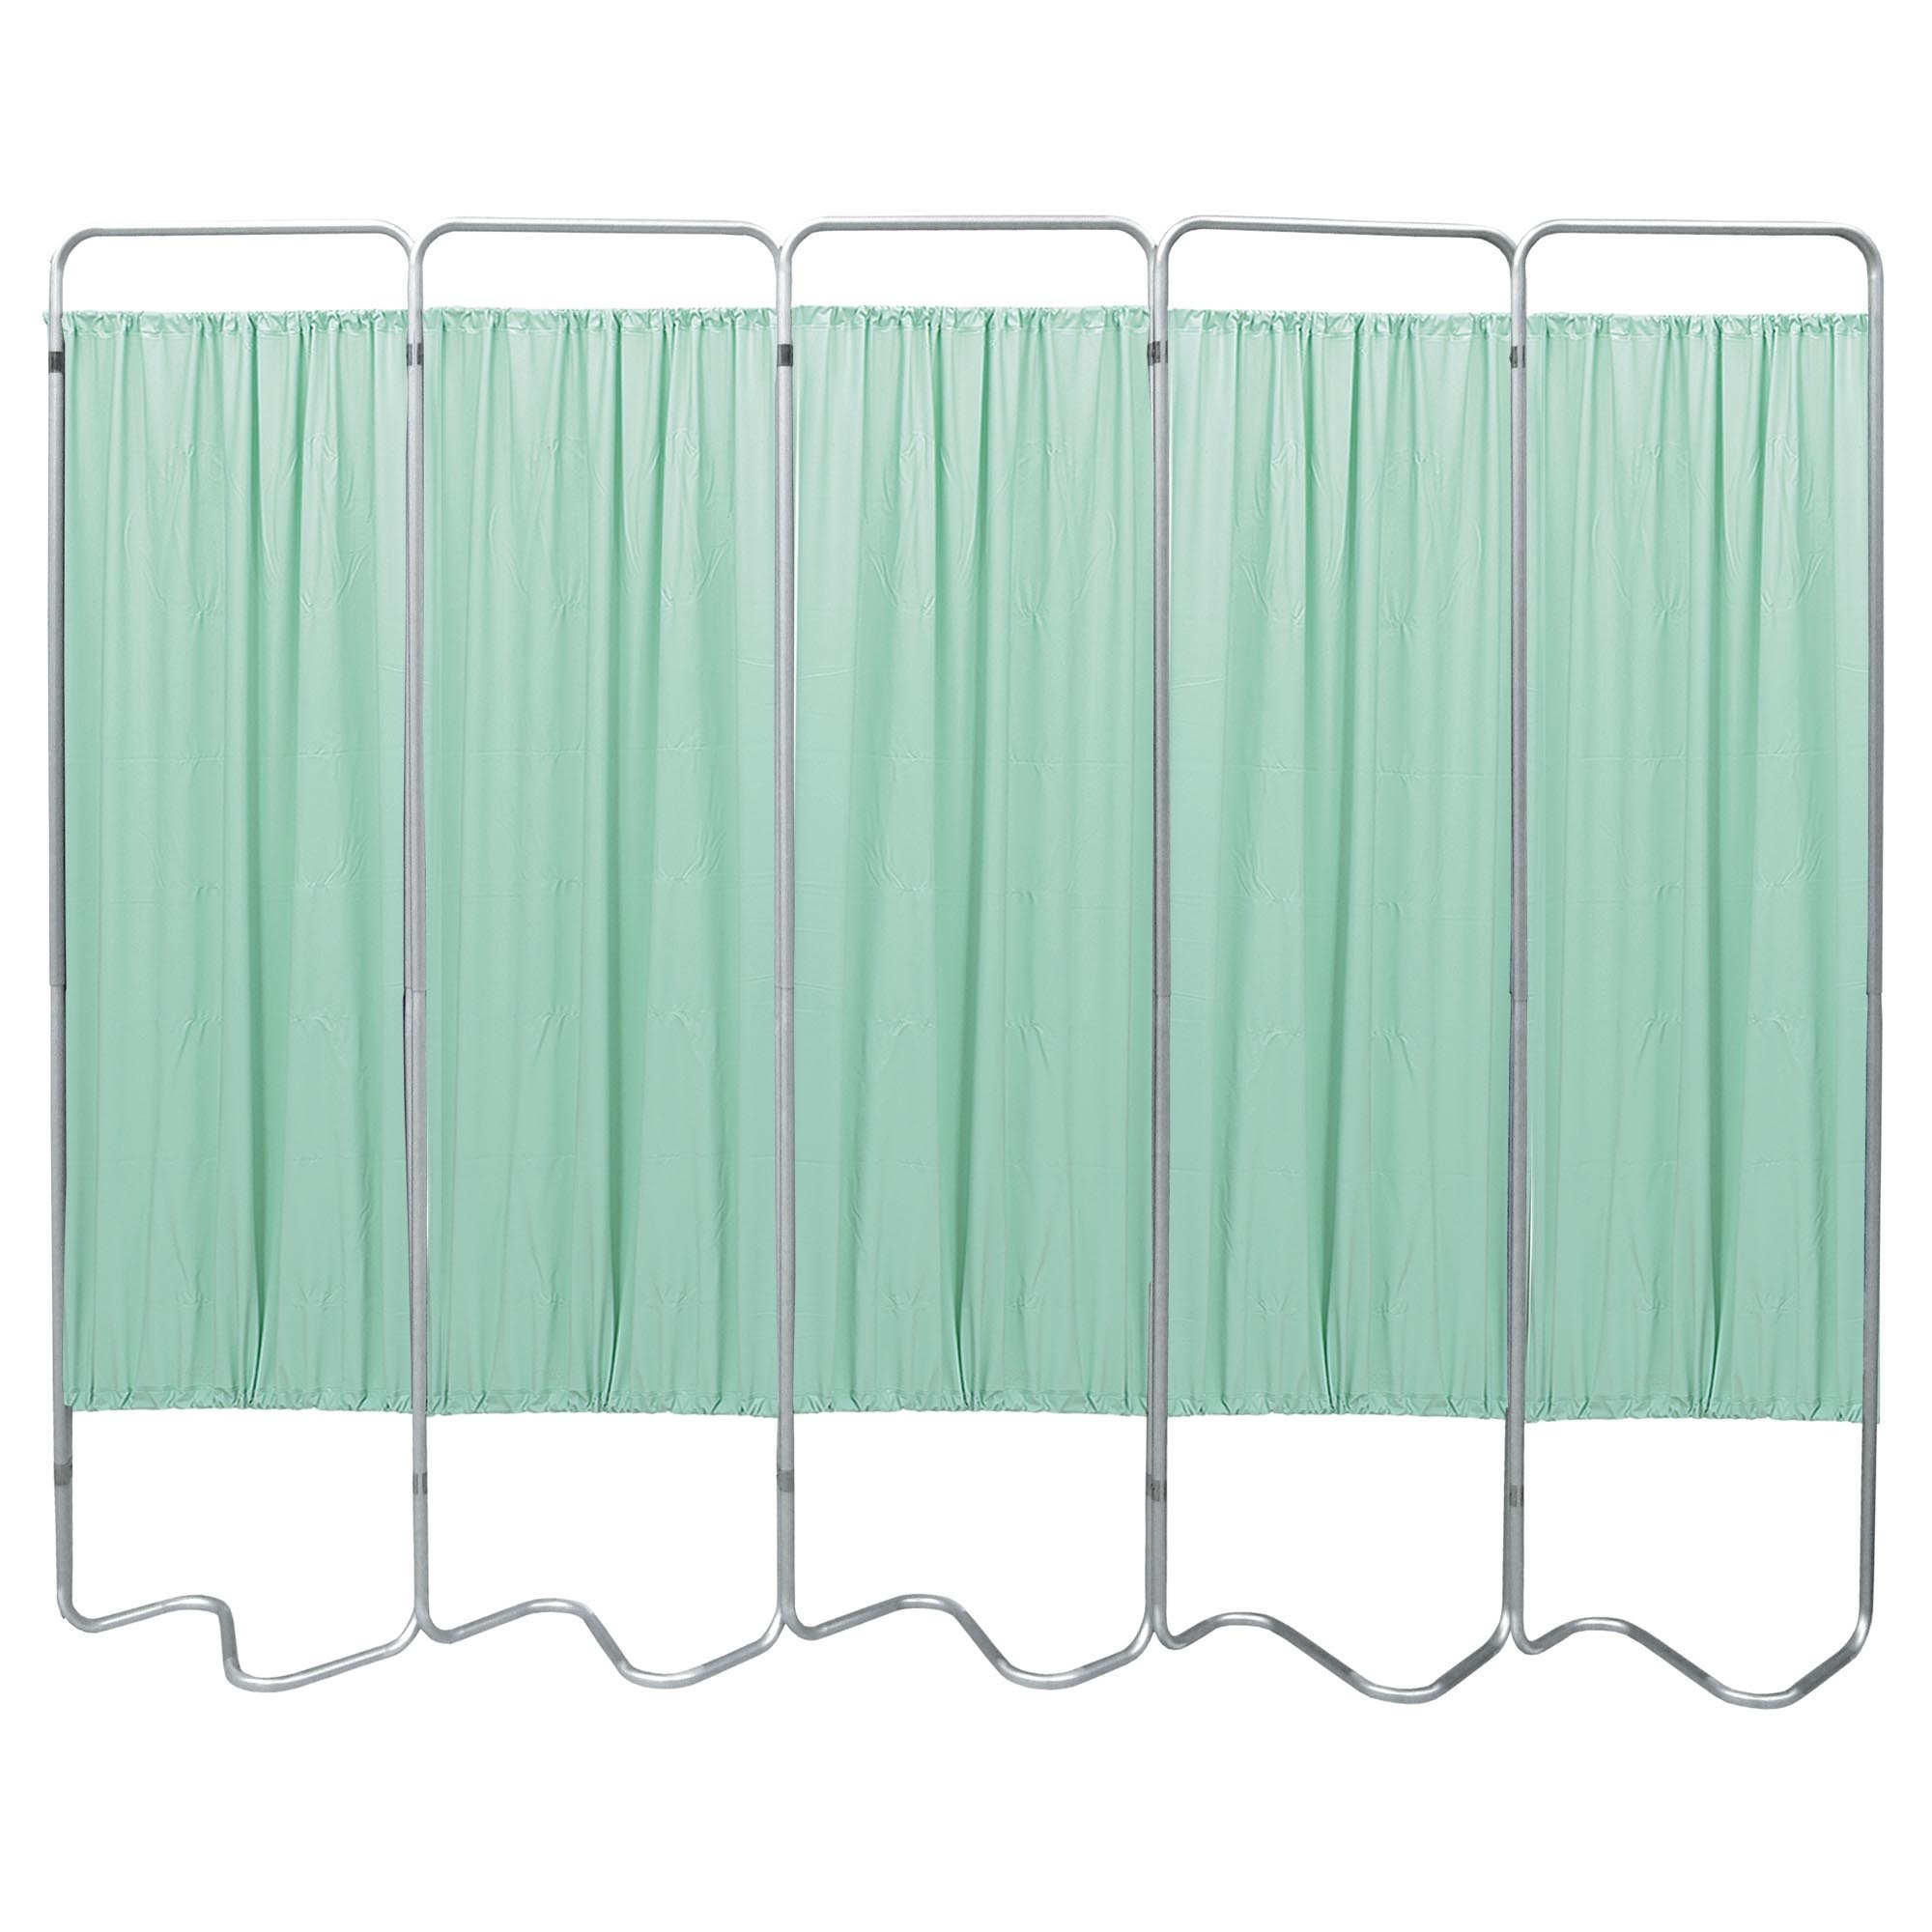 Beamatic 5 Section Folding Privacy Screen - Green Vinyl Screen Panel